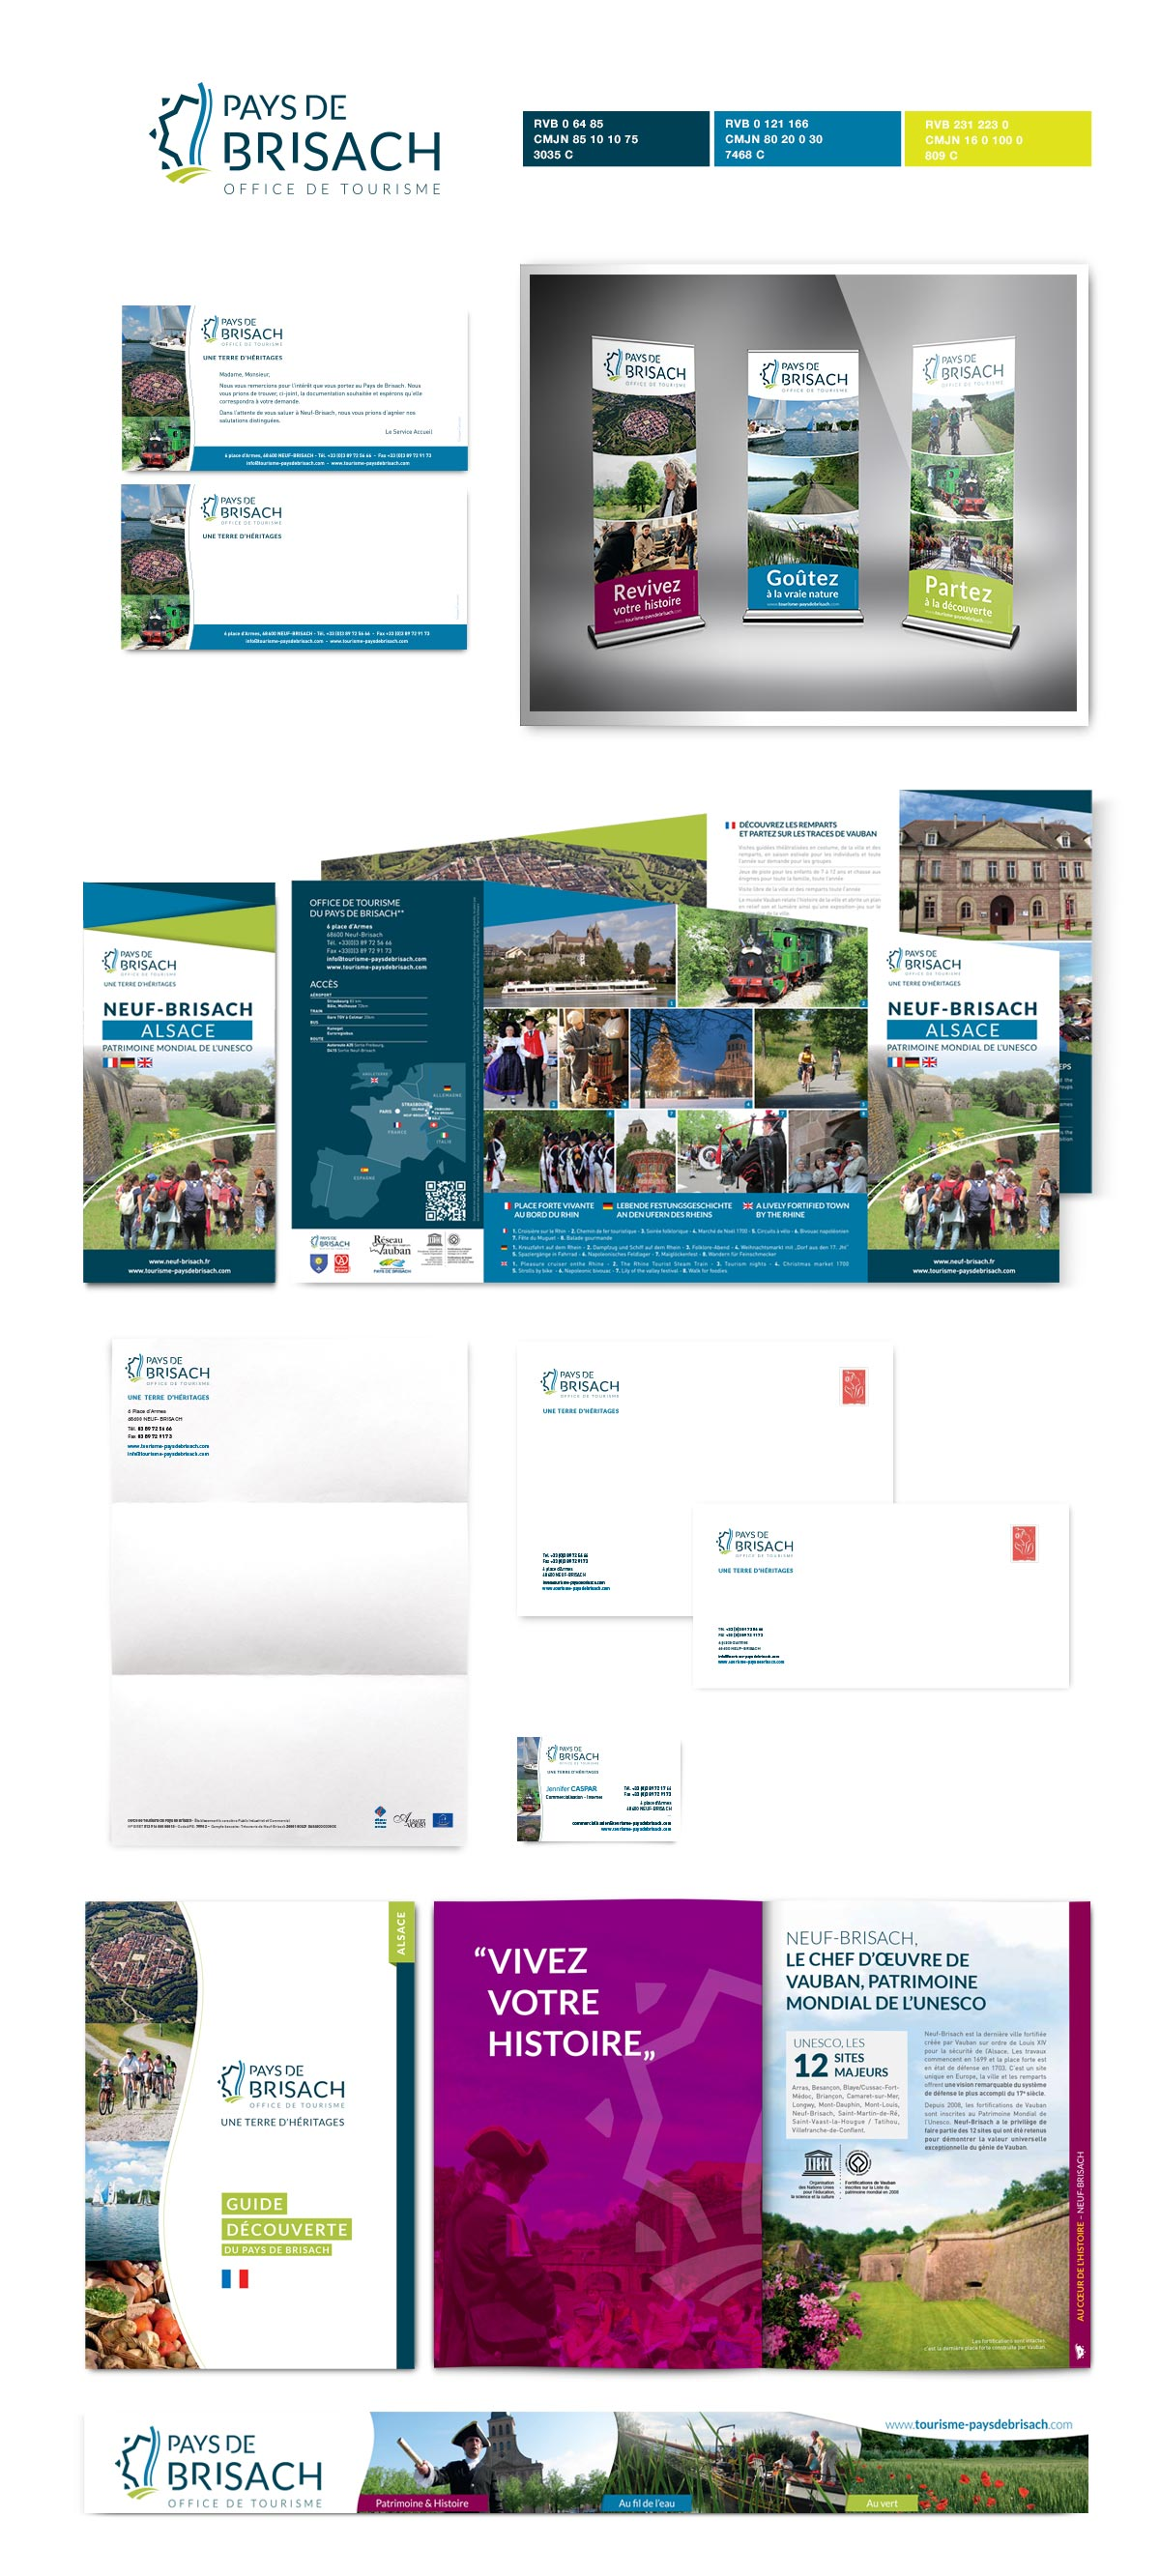 Office de Tourisme Pays de Brisach conception de supports de communication dépliant brochures papêterie - Site vitrine, illustration